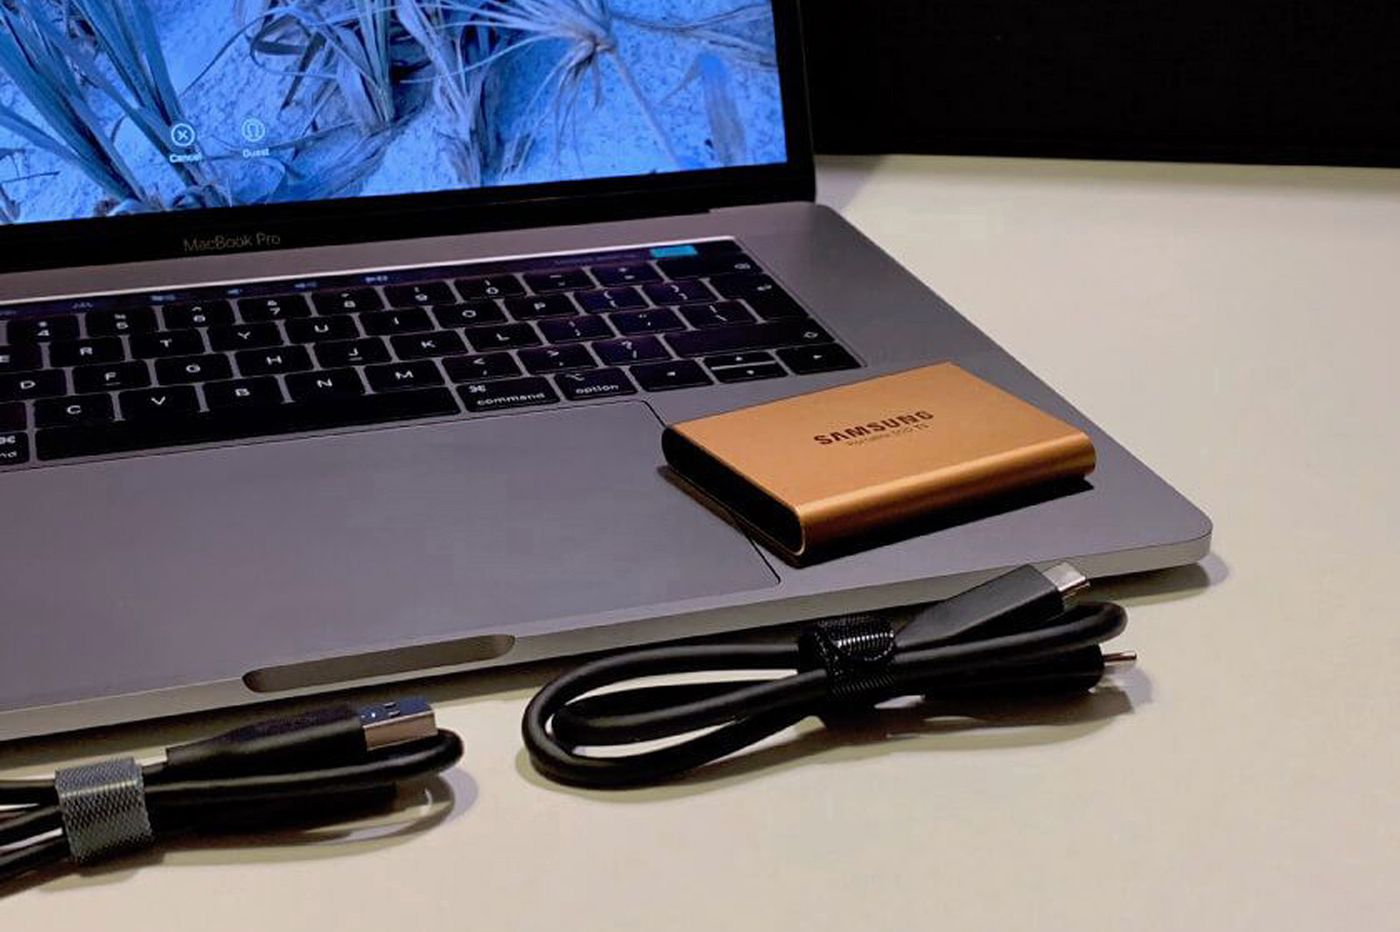 Travel Gear: Samsung Portable Solid State Drive